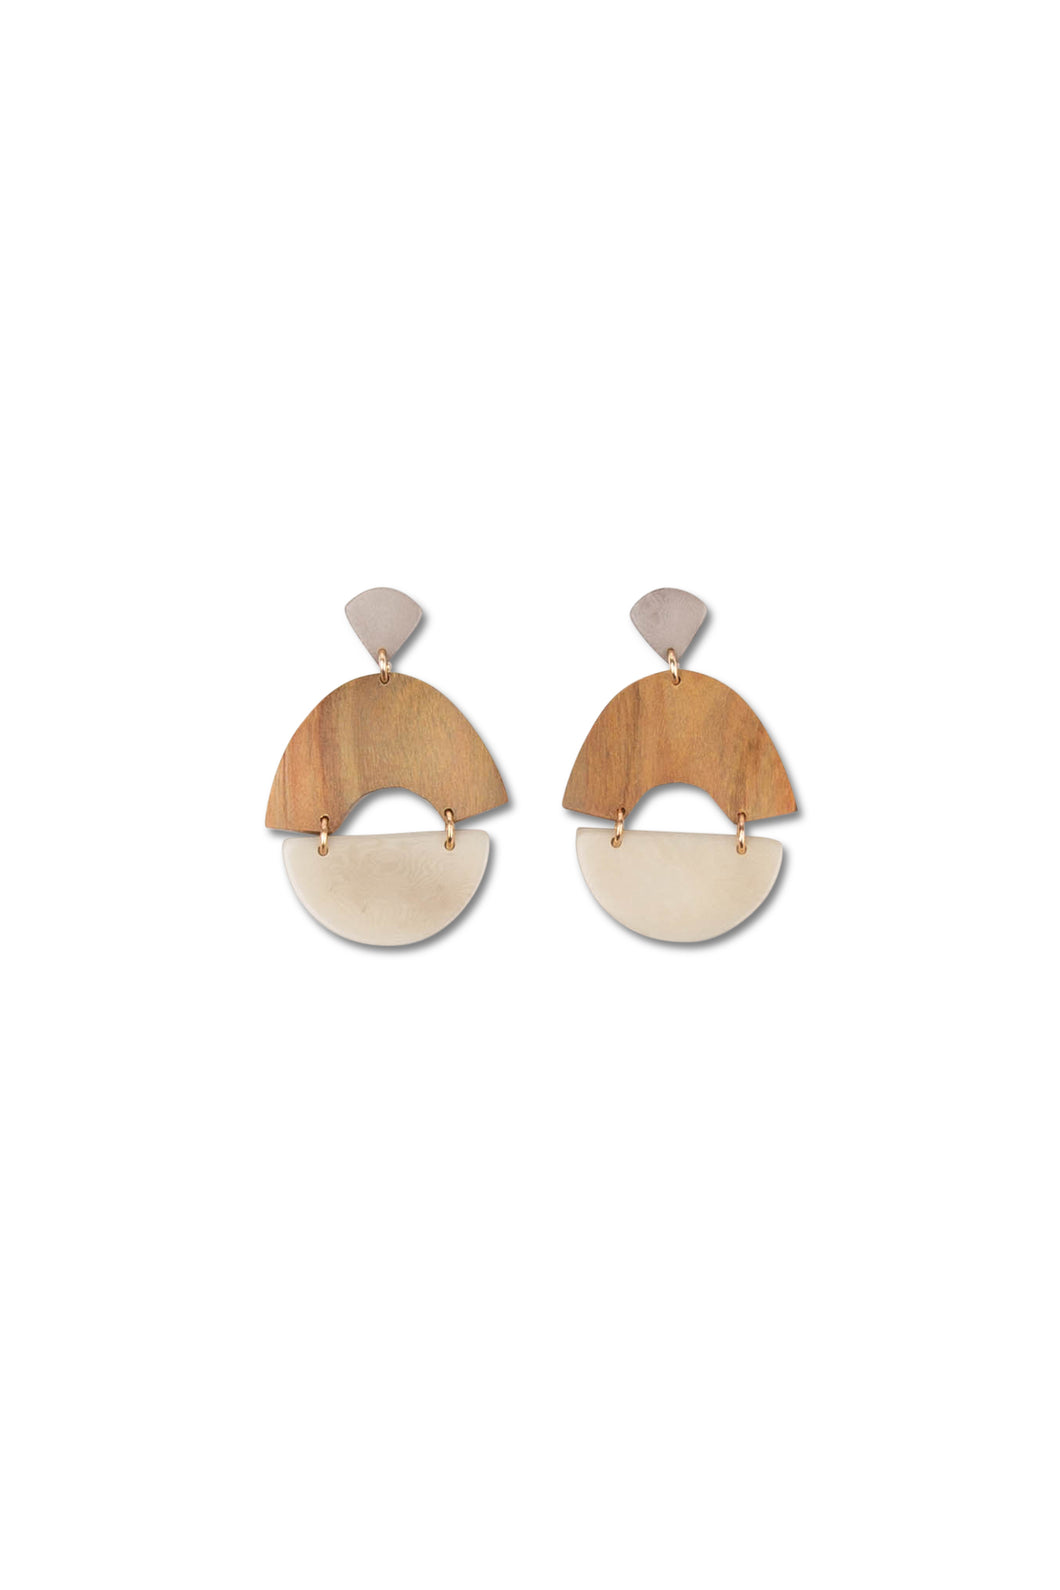 Noonday Collection: Sundial Earrings